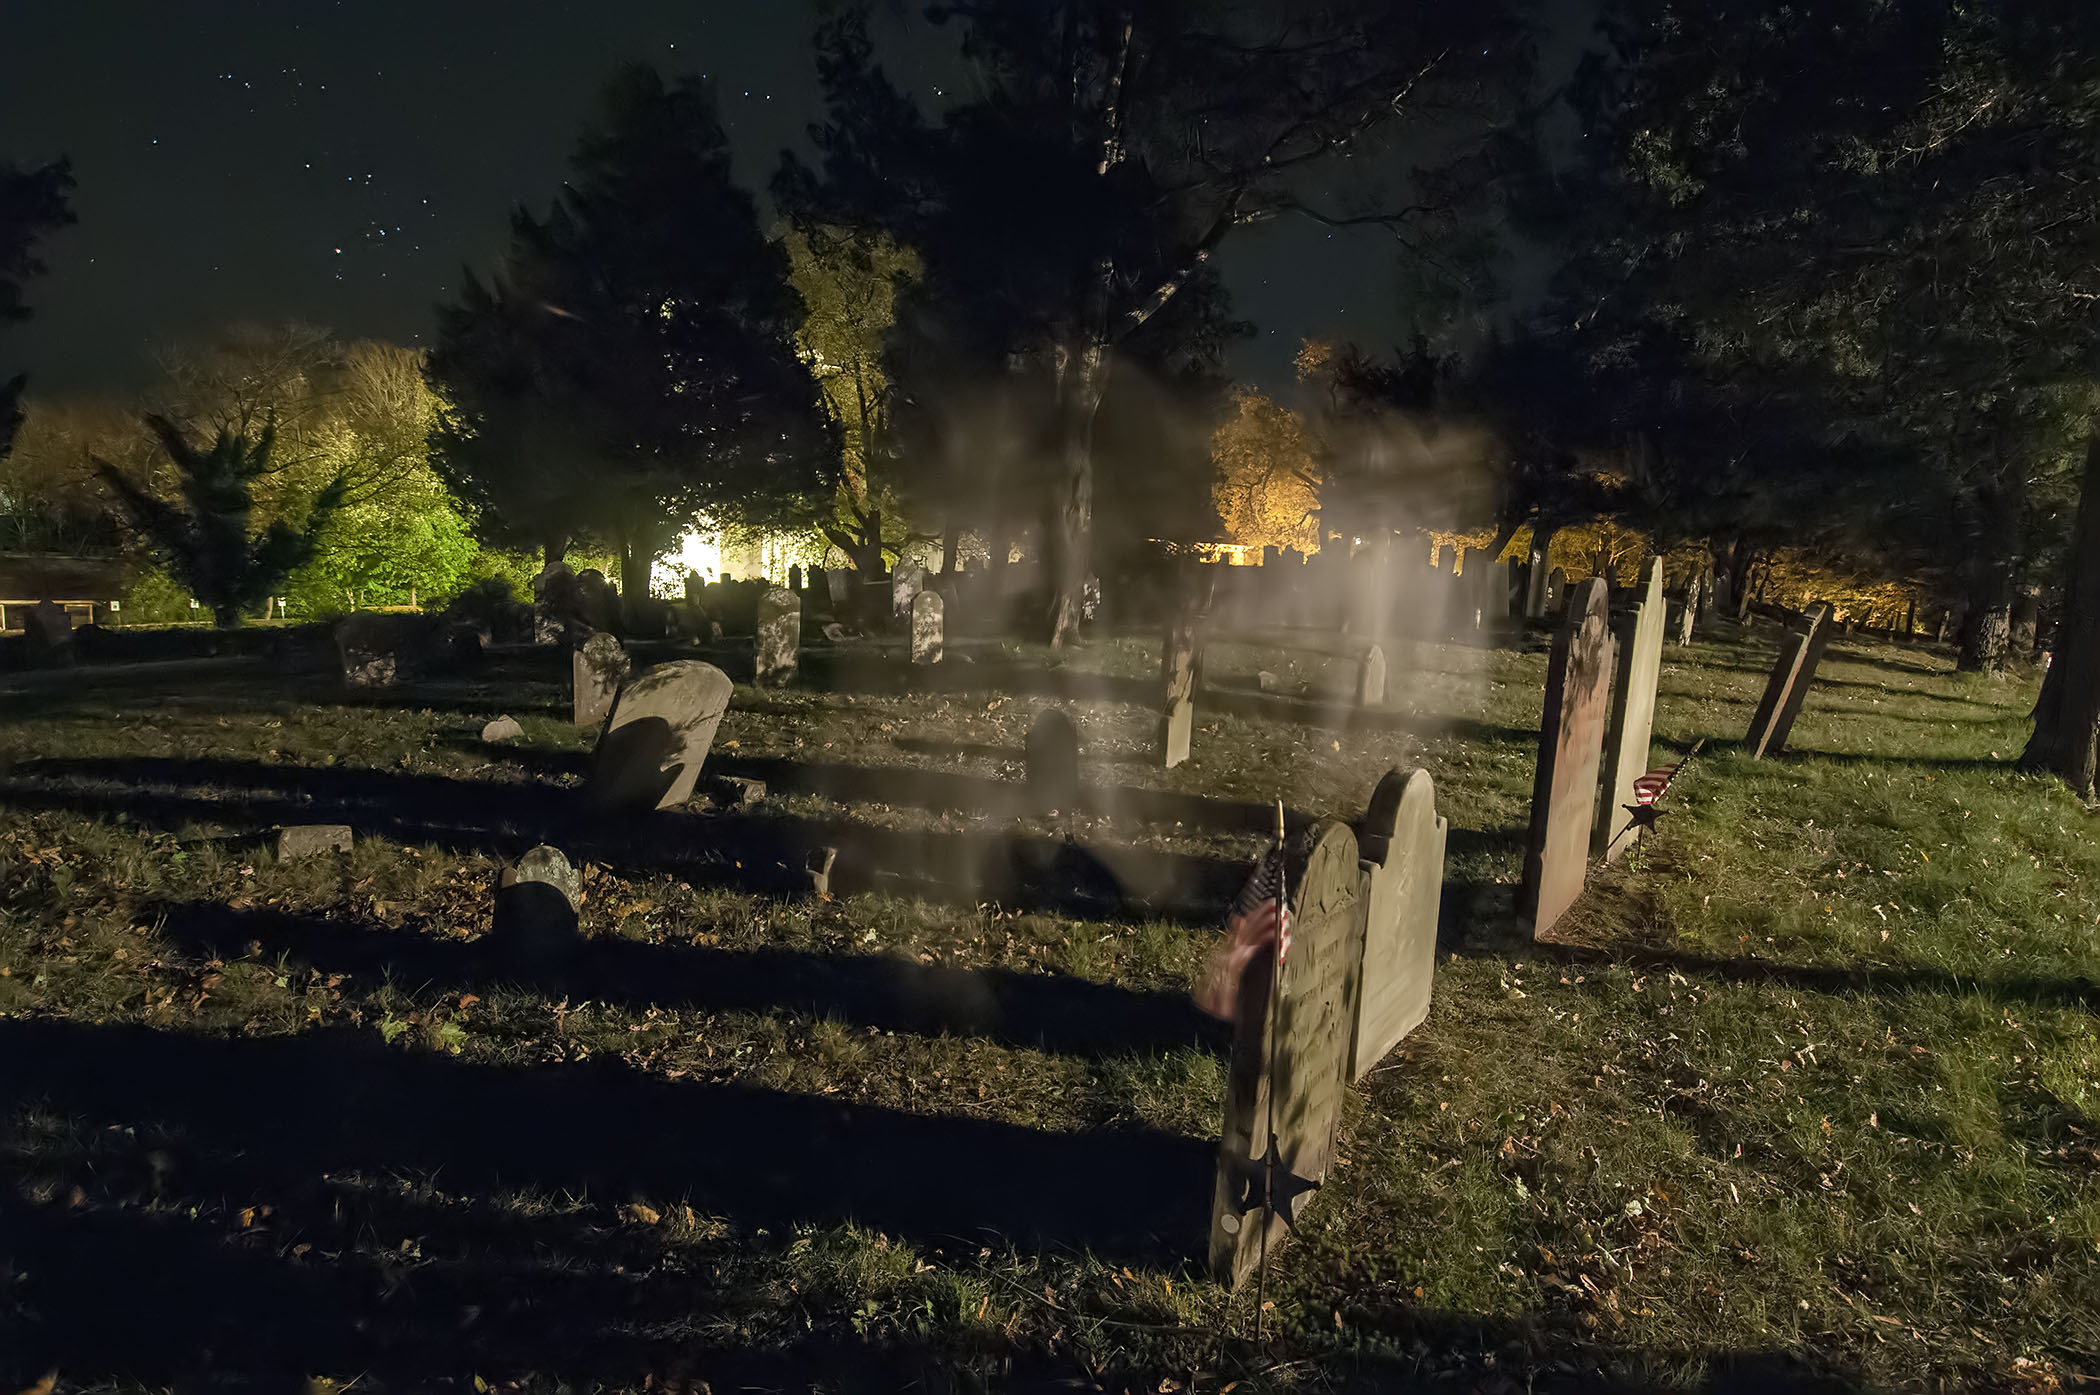 A spooky shot of the Old Burying Ground in Sag Harbor.